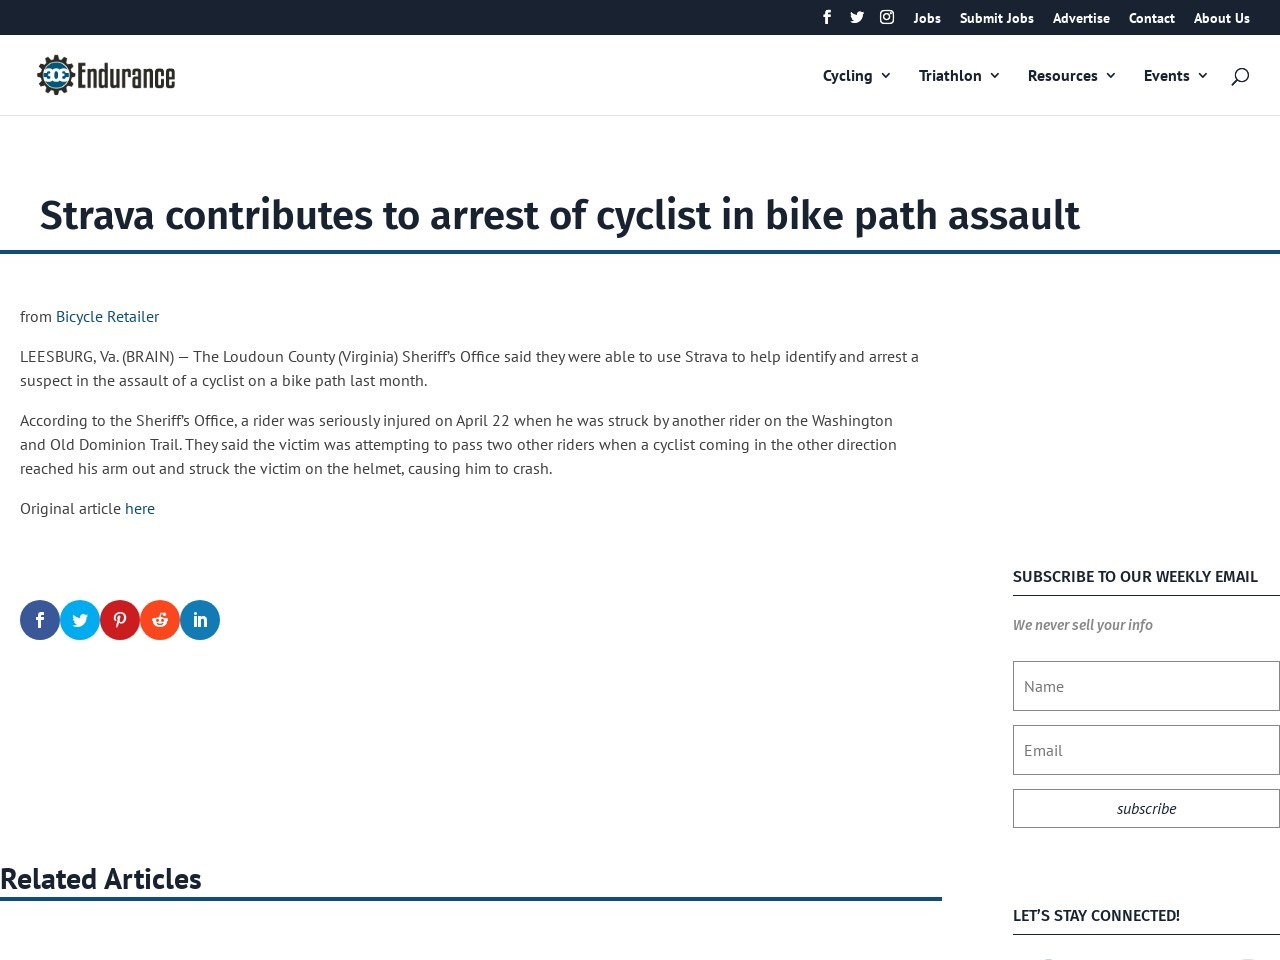 Strava contributes to arrest of cyclist in bike path assault